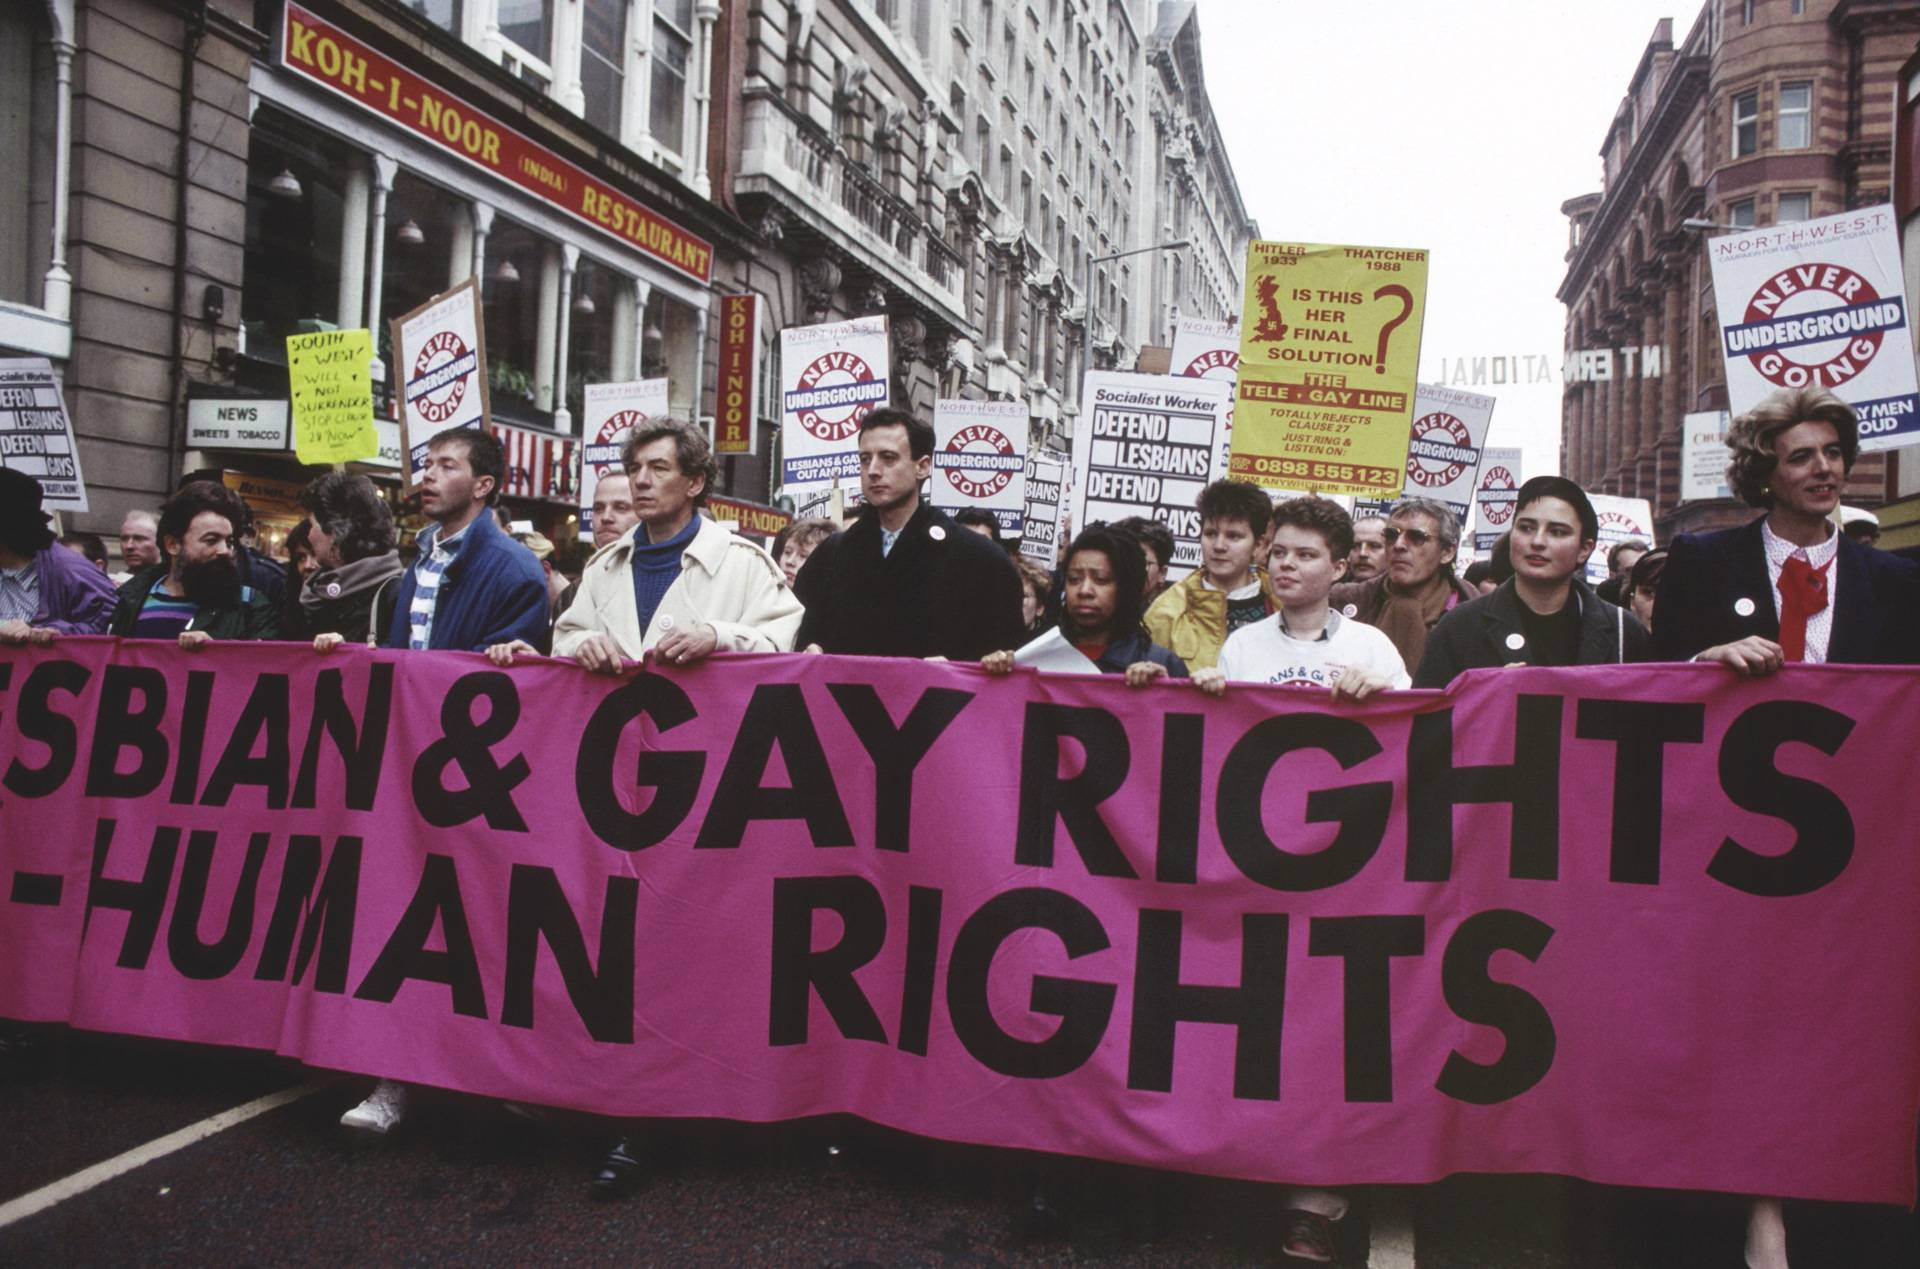 Sir Ian McKellen, Peter Tatchell & Louise Wellwein (pictured third from the right in the white) in Manchester on March Against Section 28, February 1988. Photography: Alamy Stock Photo